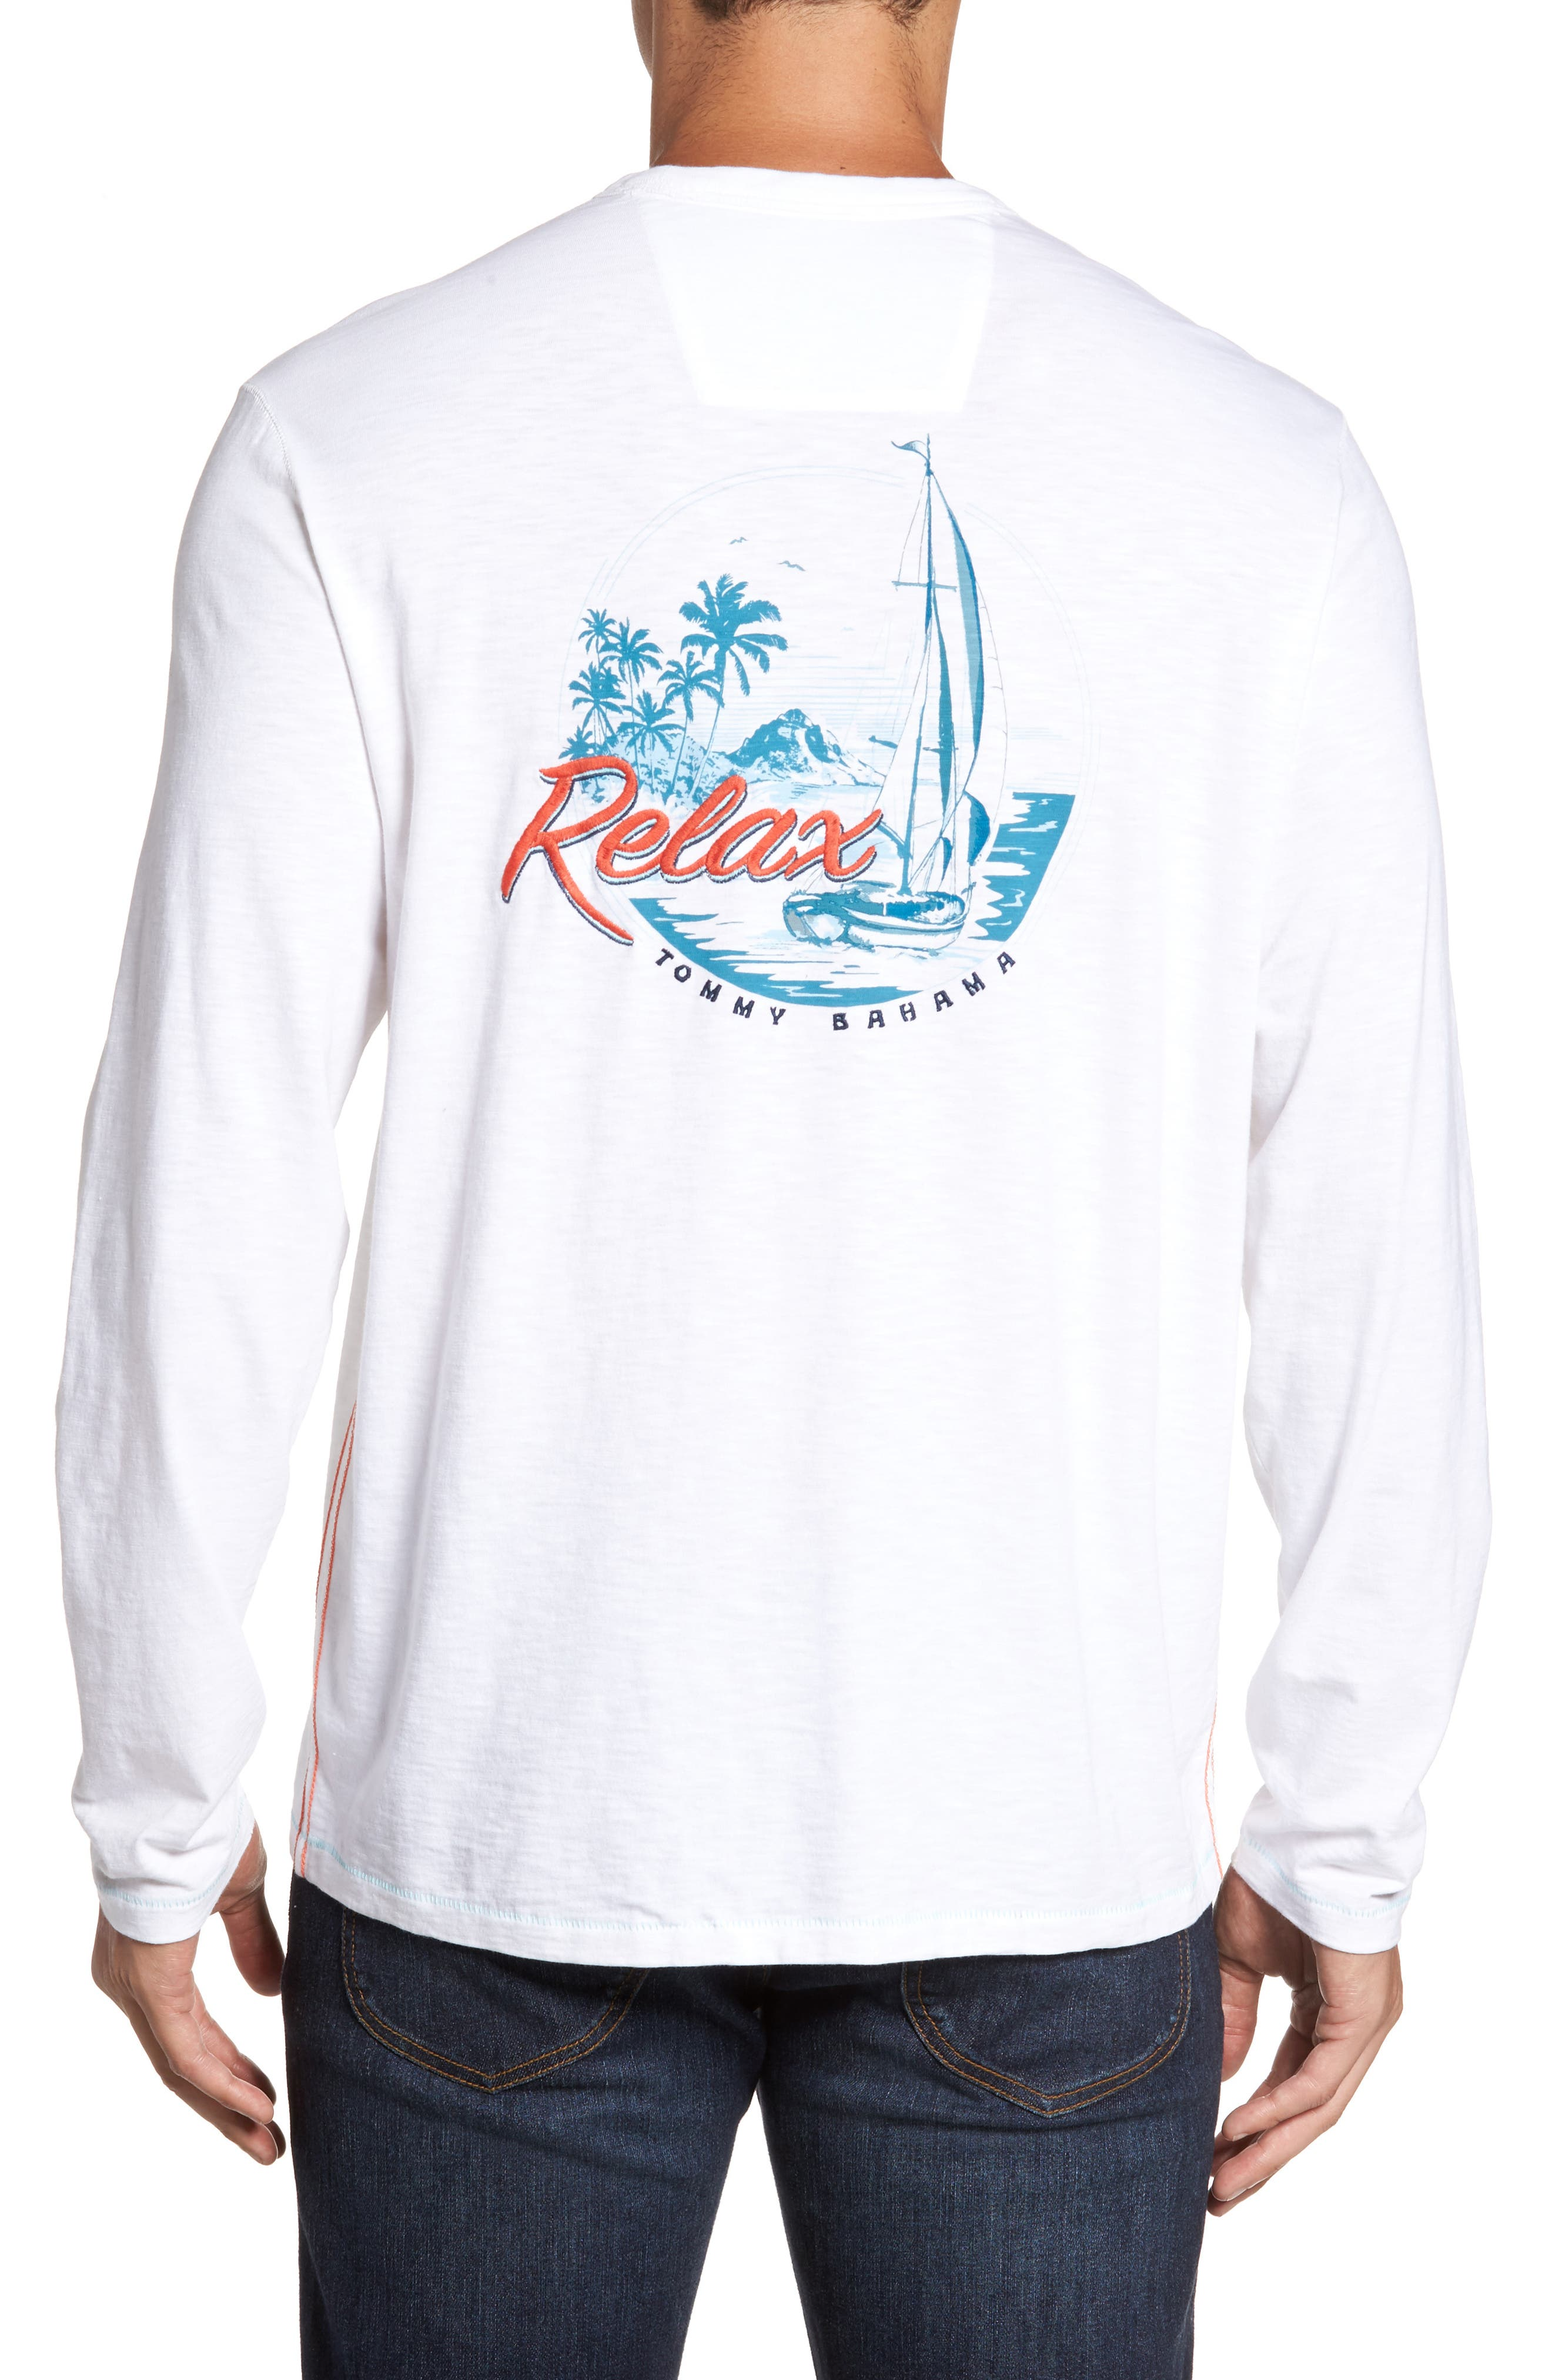 Tommy Bahama Relax at Sea Lux T-Shirt